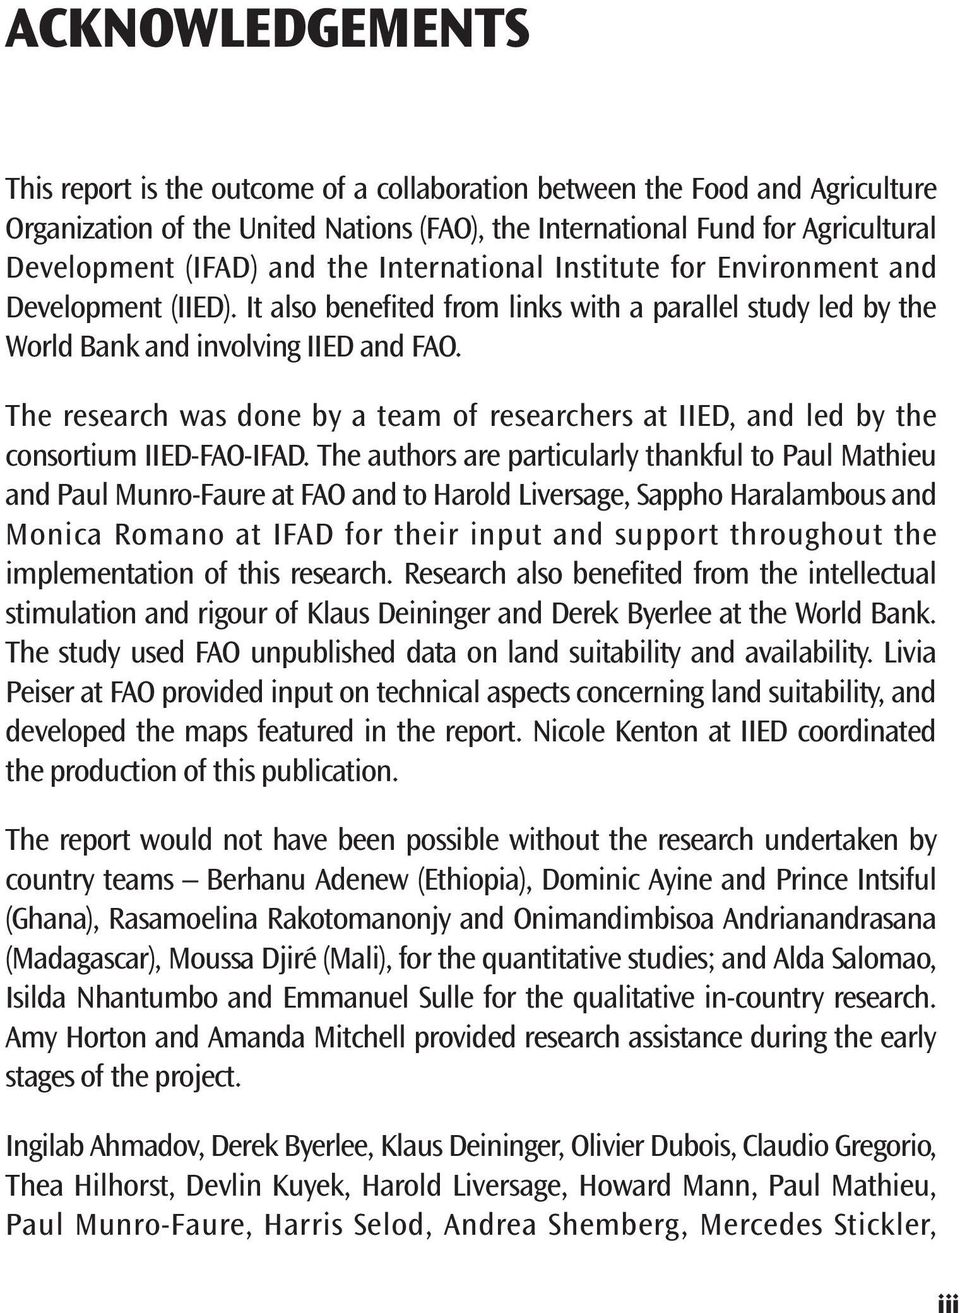 The research was done by a team of researchers at IIED, and led by the consortium IIED-FAO-IFAD.